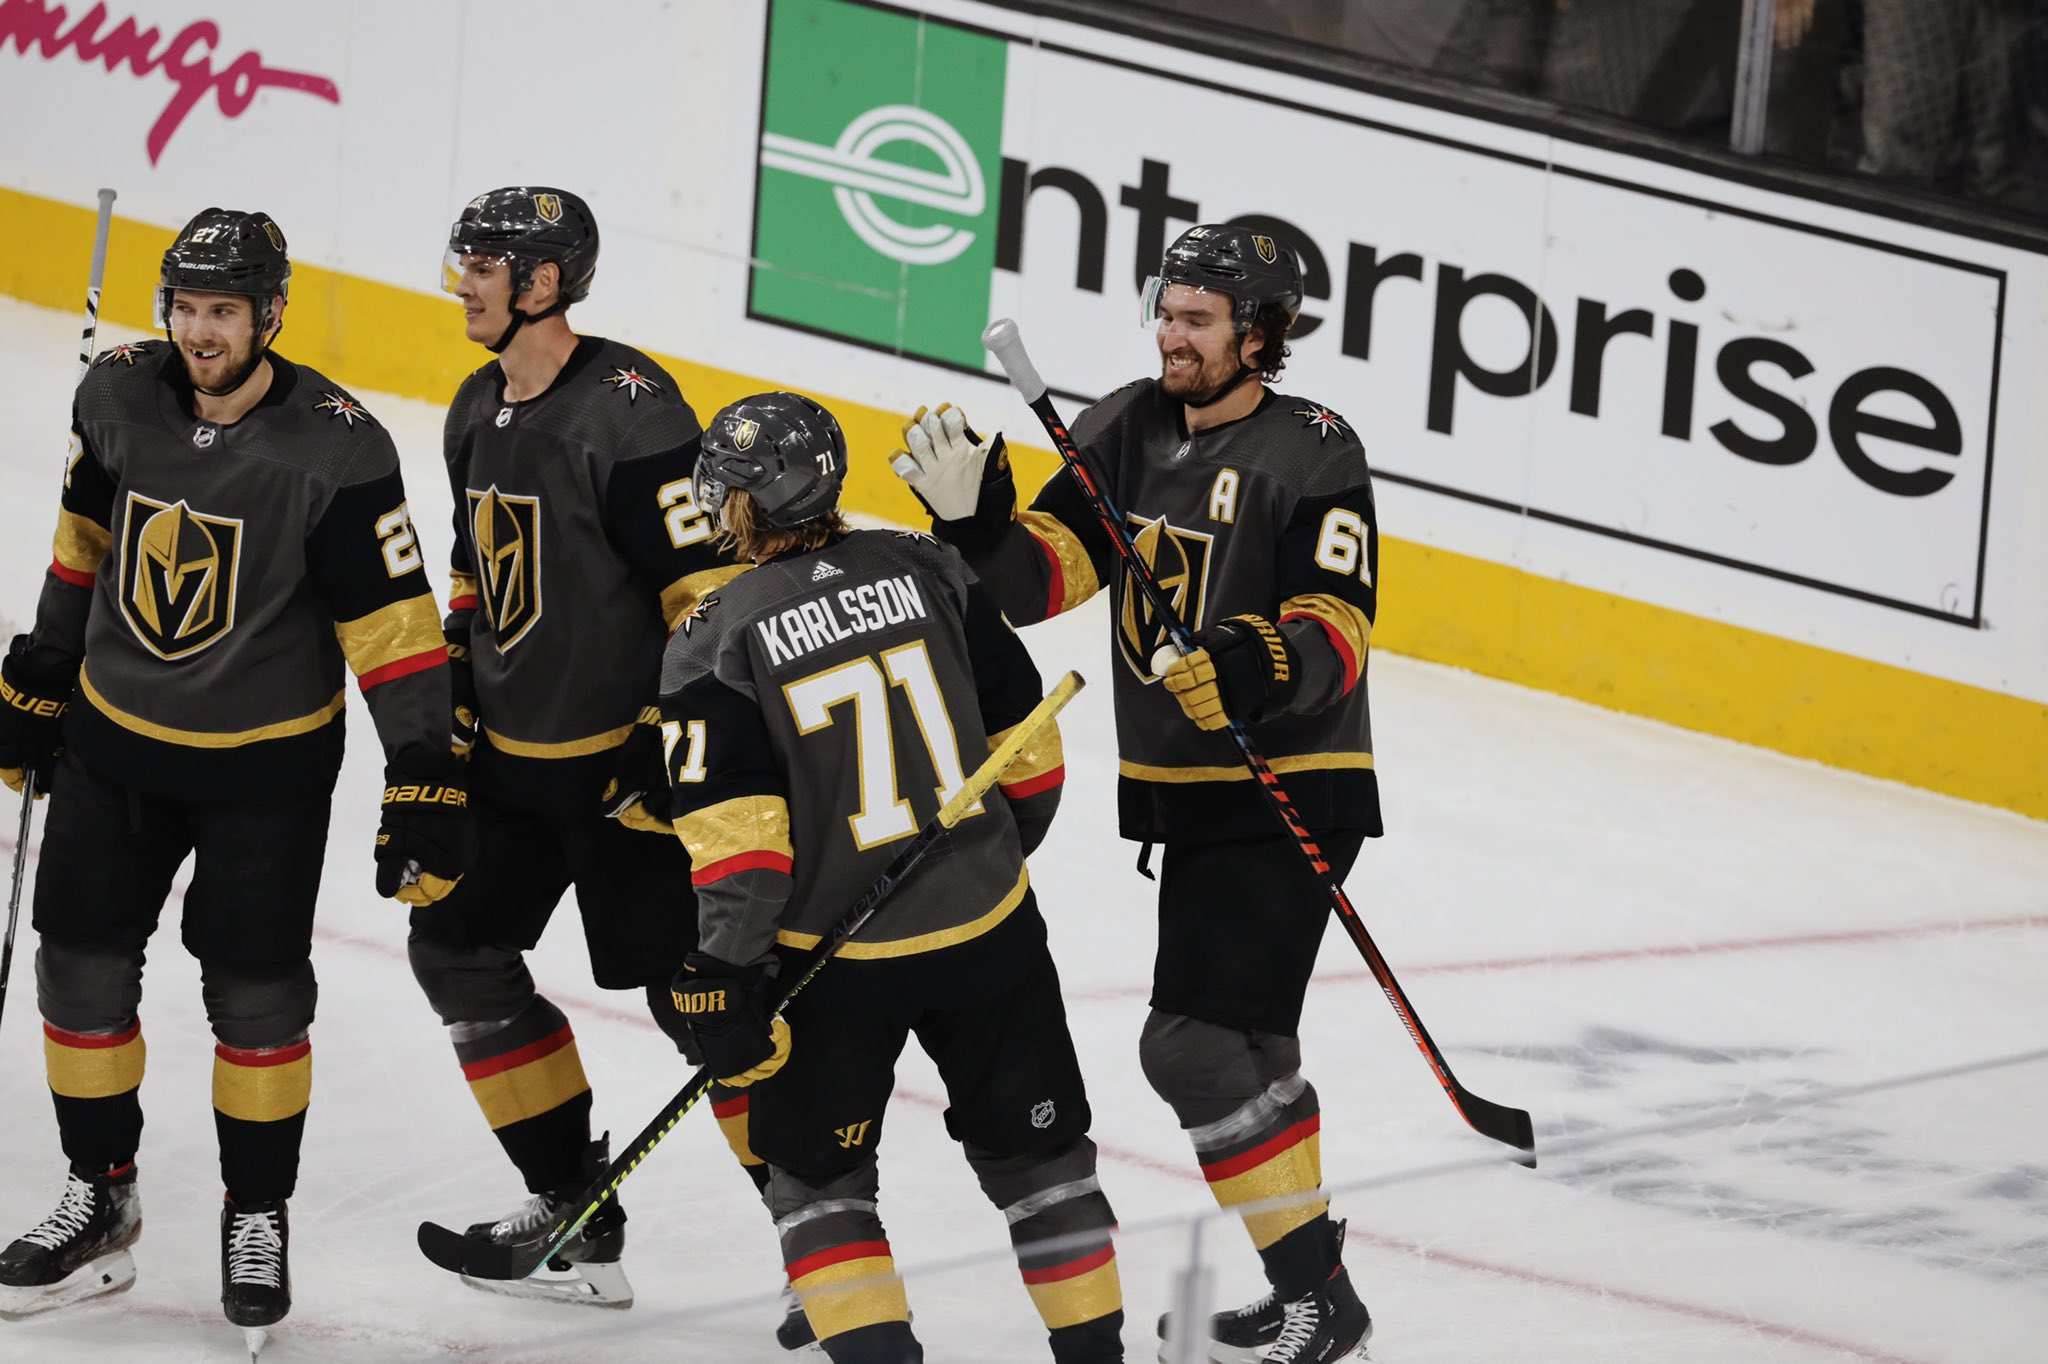 Knights hold off Caps to earn 3rd straight win